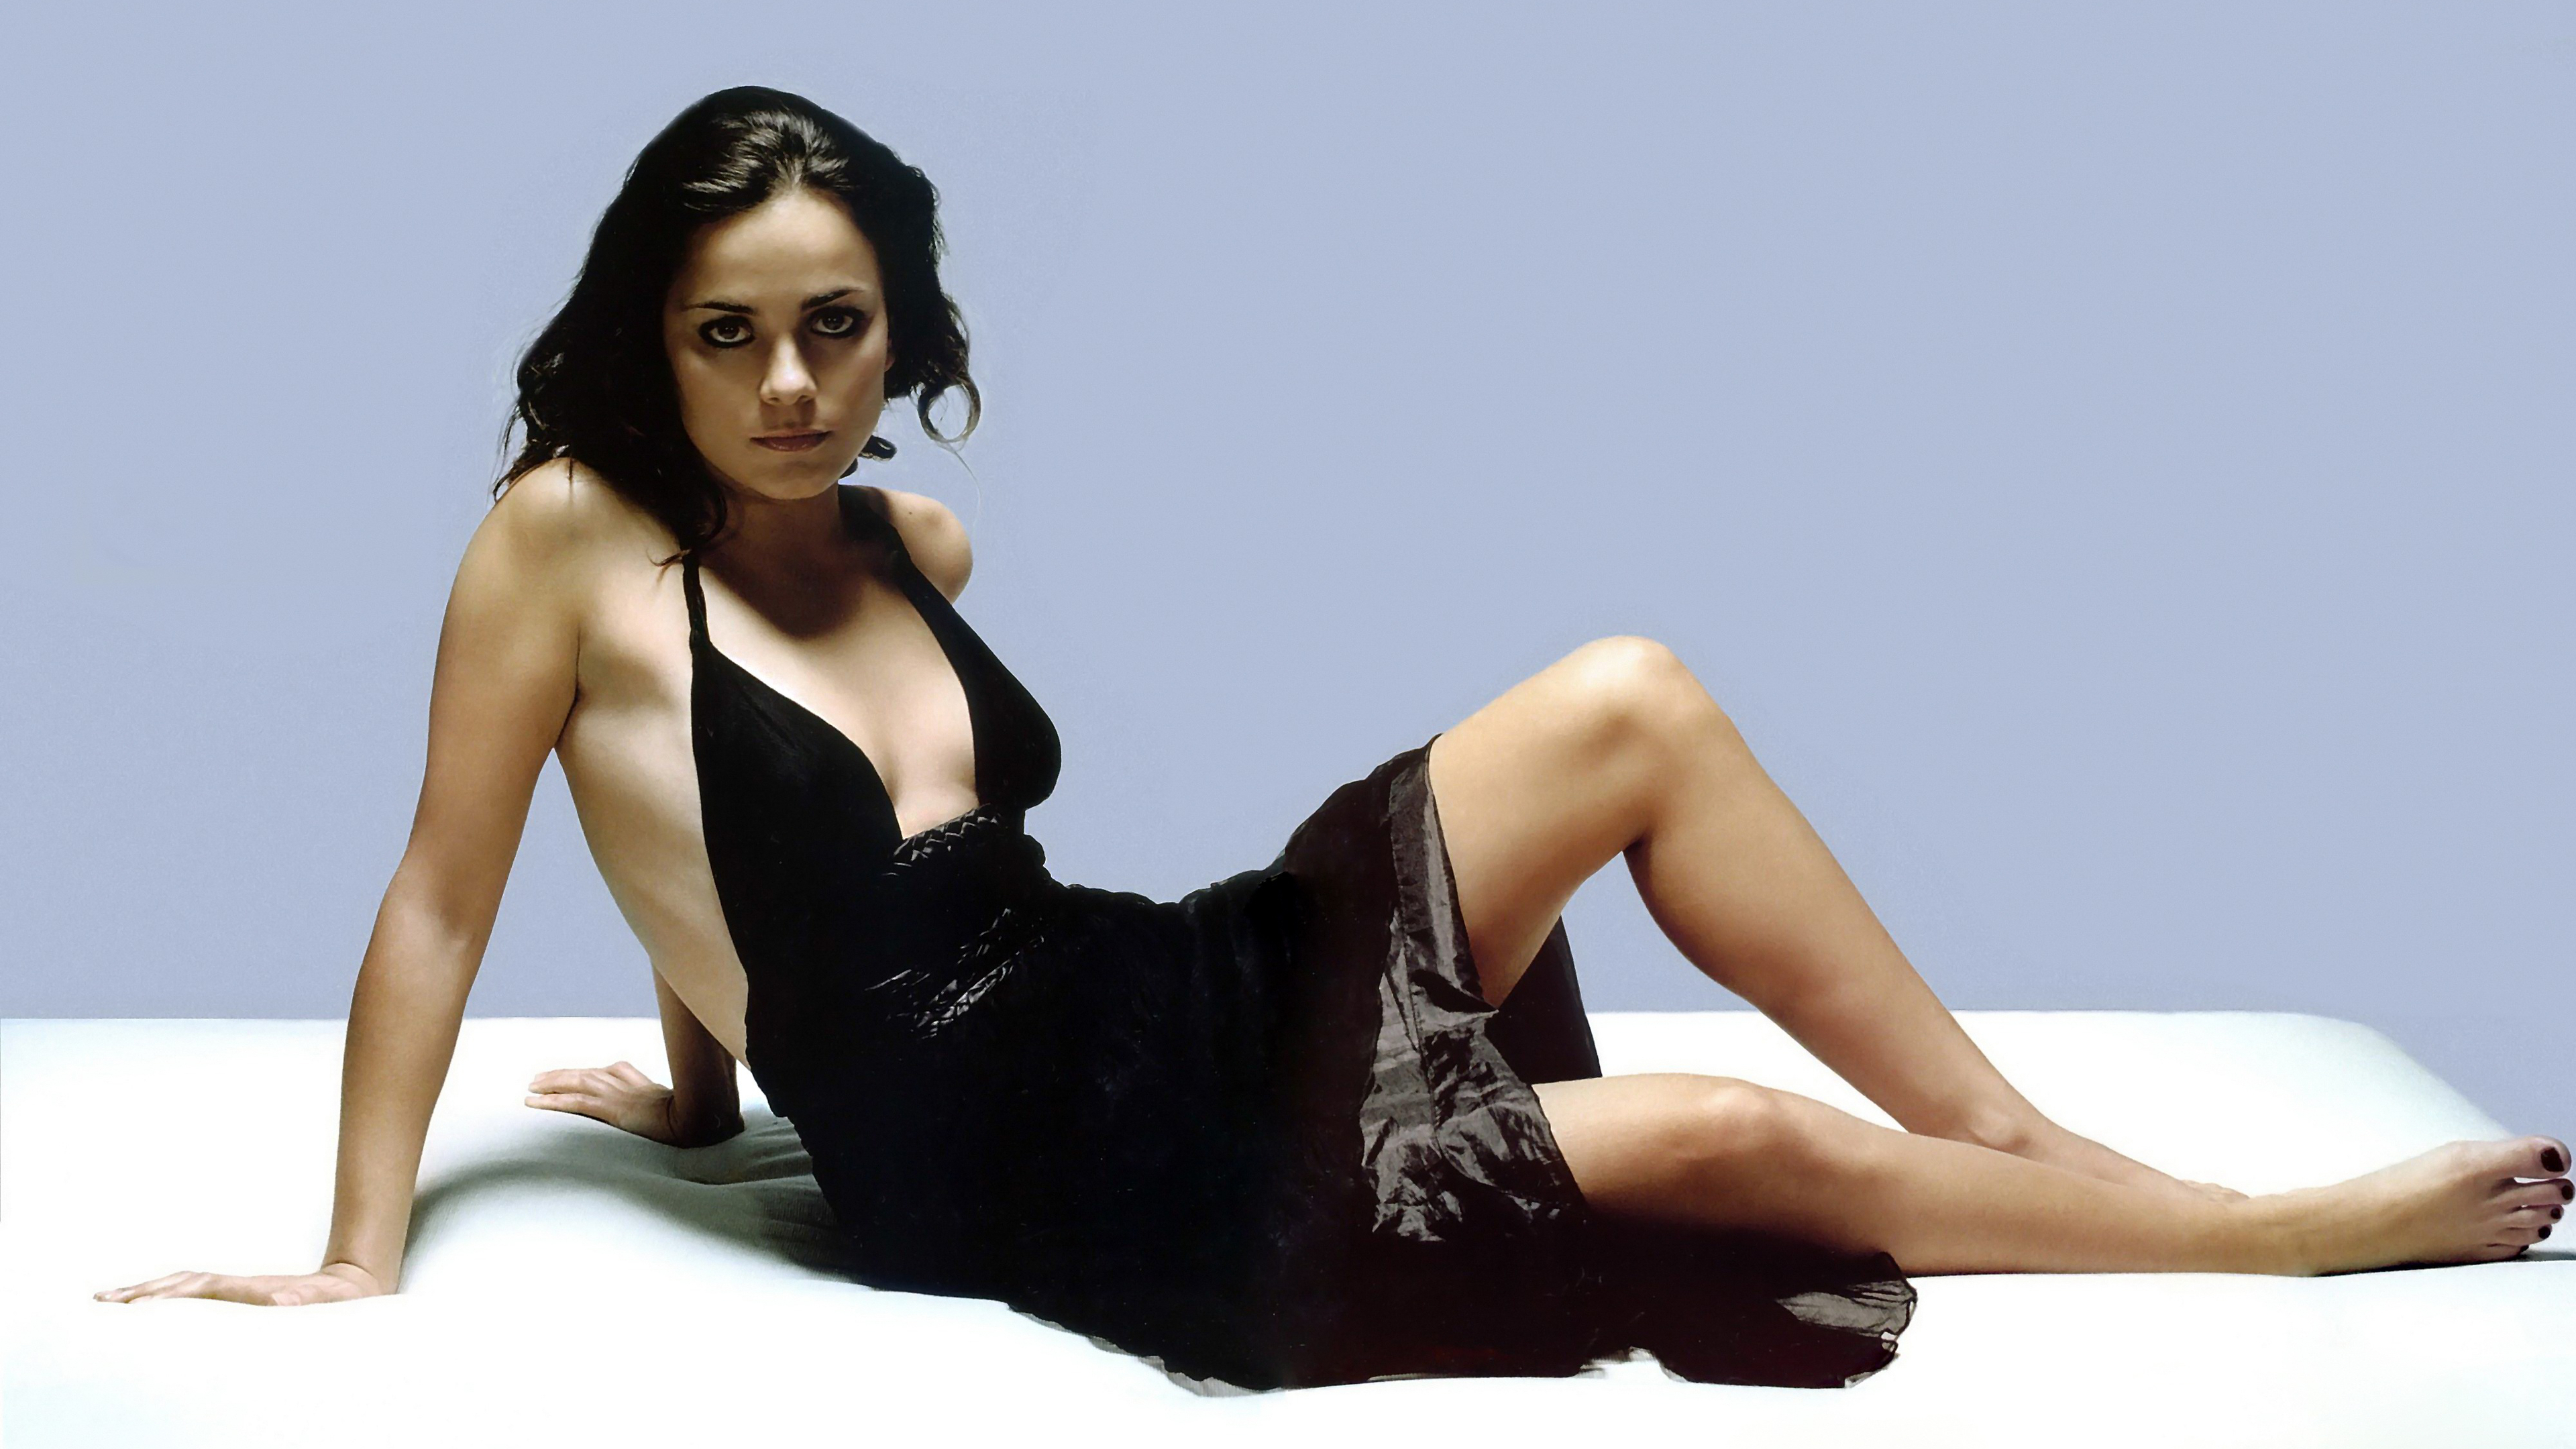 Alice braga city of god cidade de deus 9